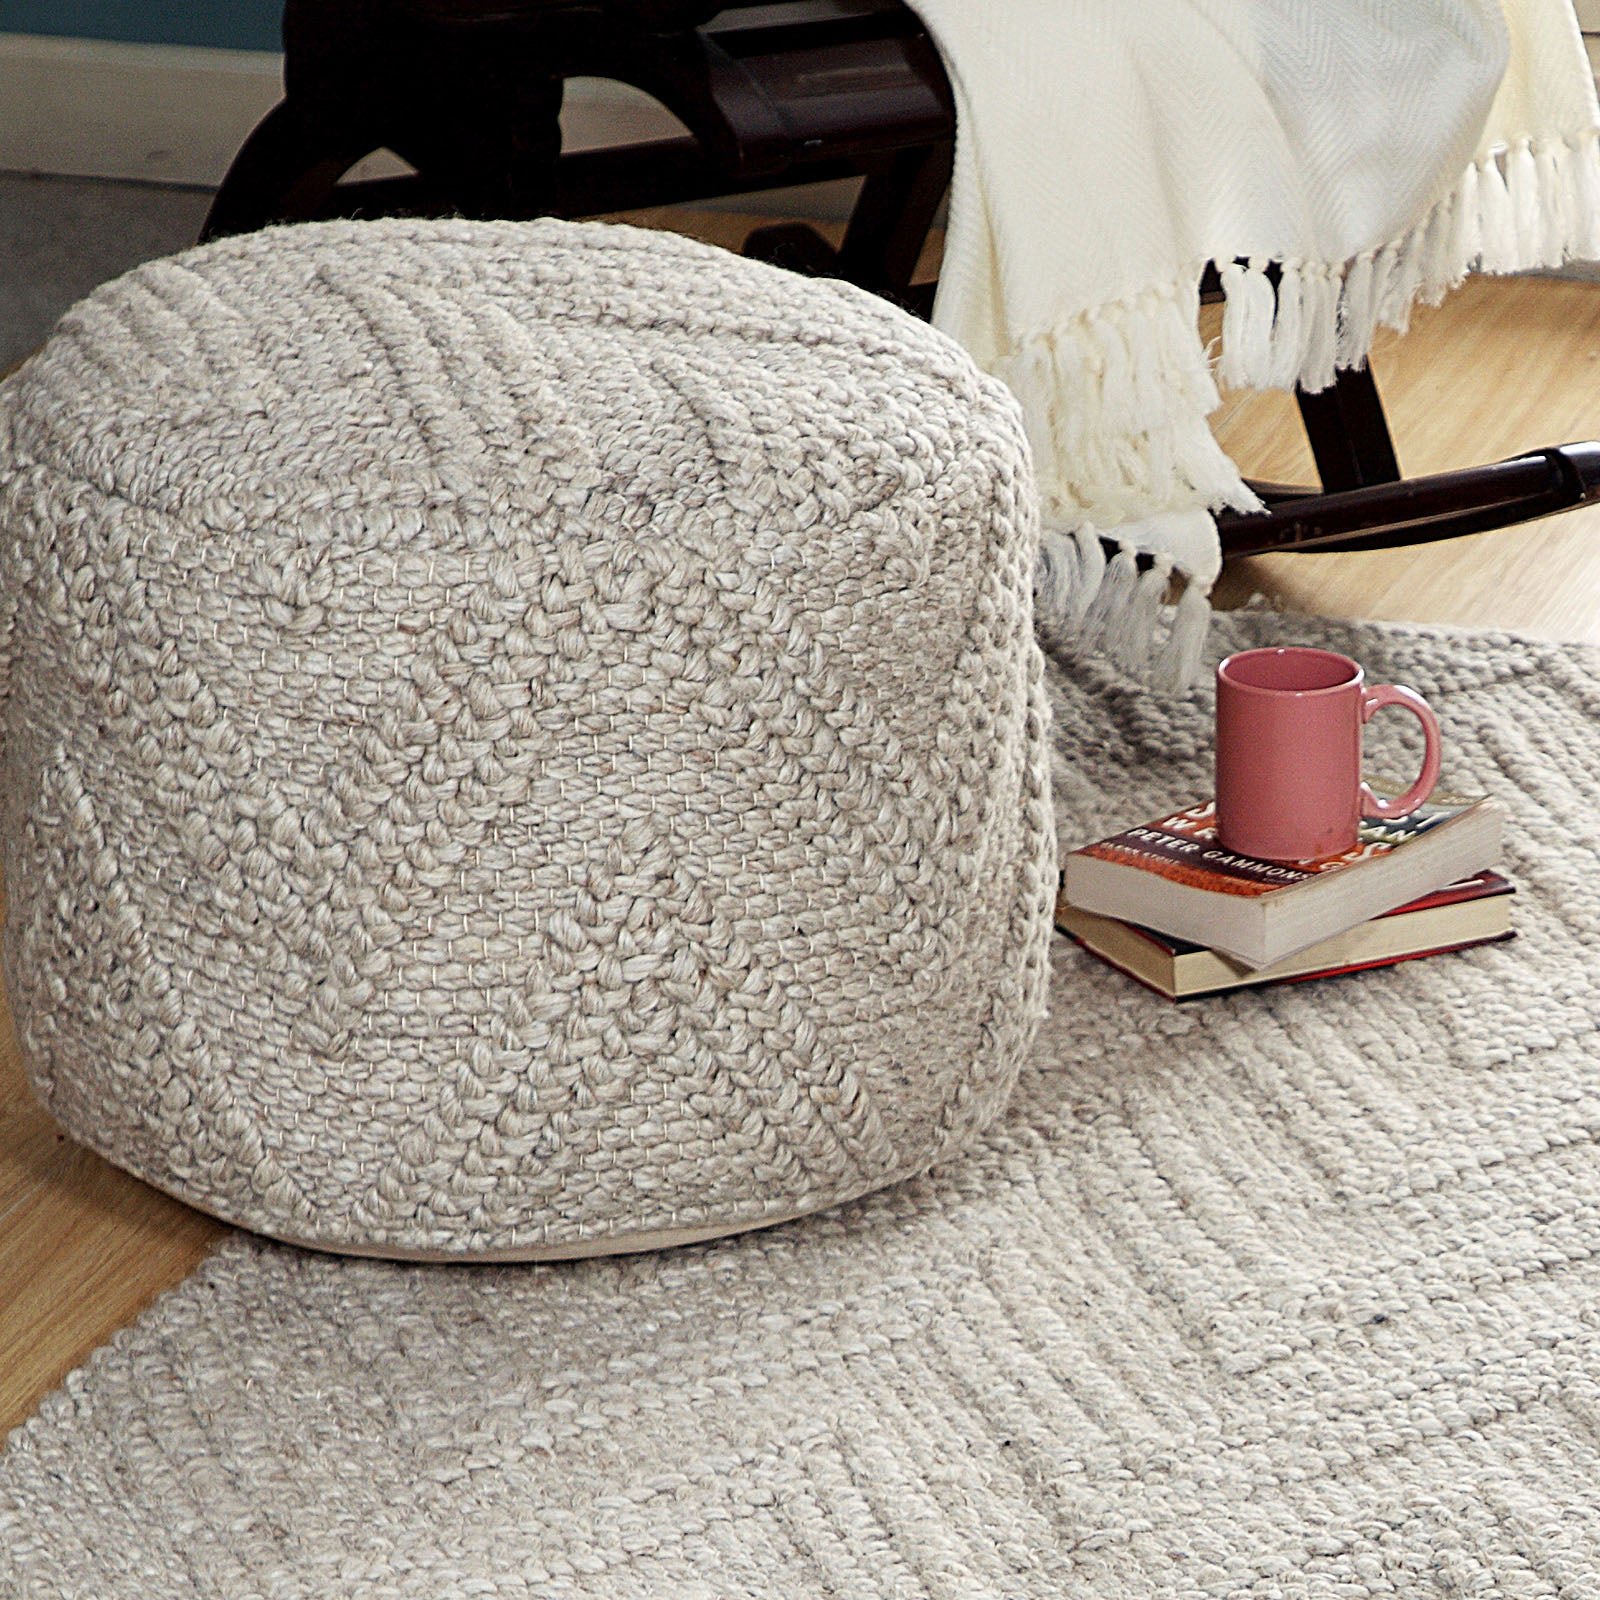 Le-Vene handmade Wool Pouf LE-08 -  بوف صوف مصنوع يدويًا من لو فين - Shop Online Furniture and Home Decor Store in Dubai, UAE at ebarza